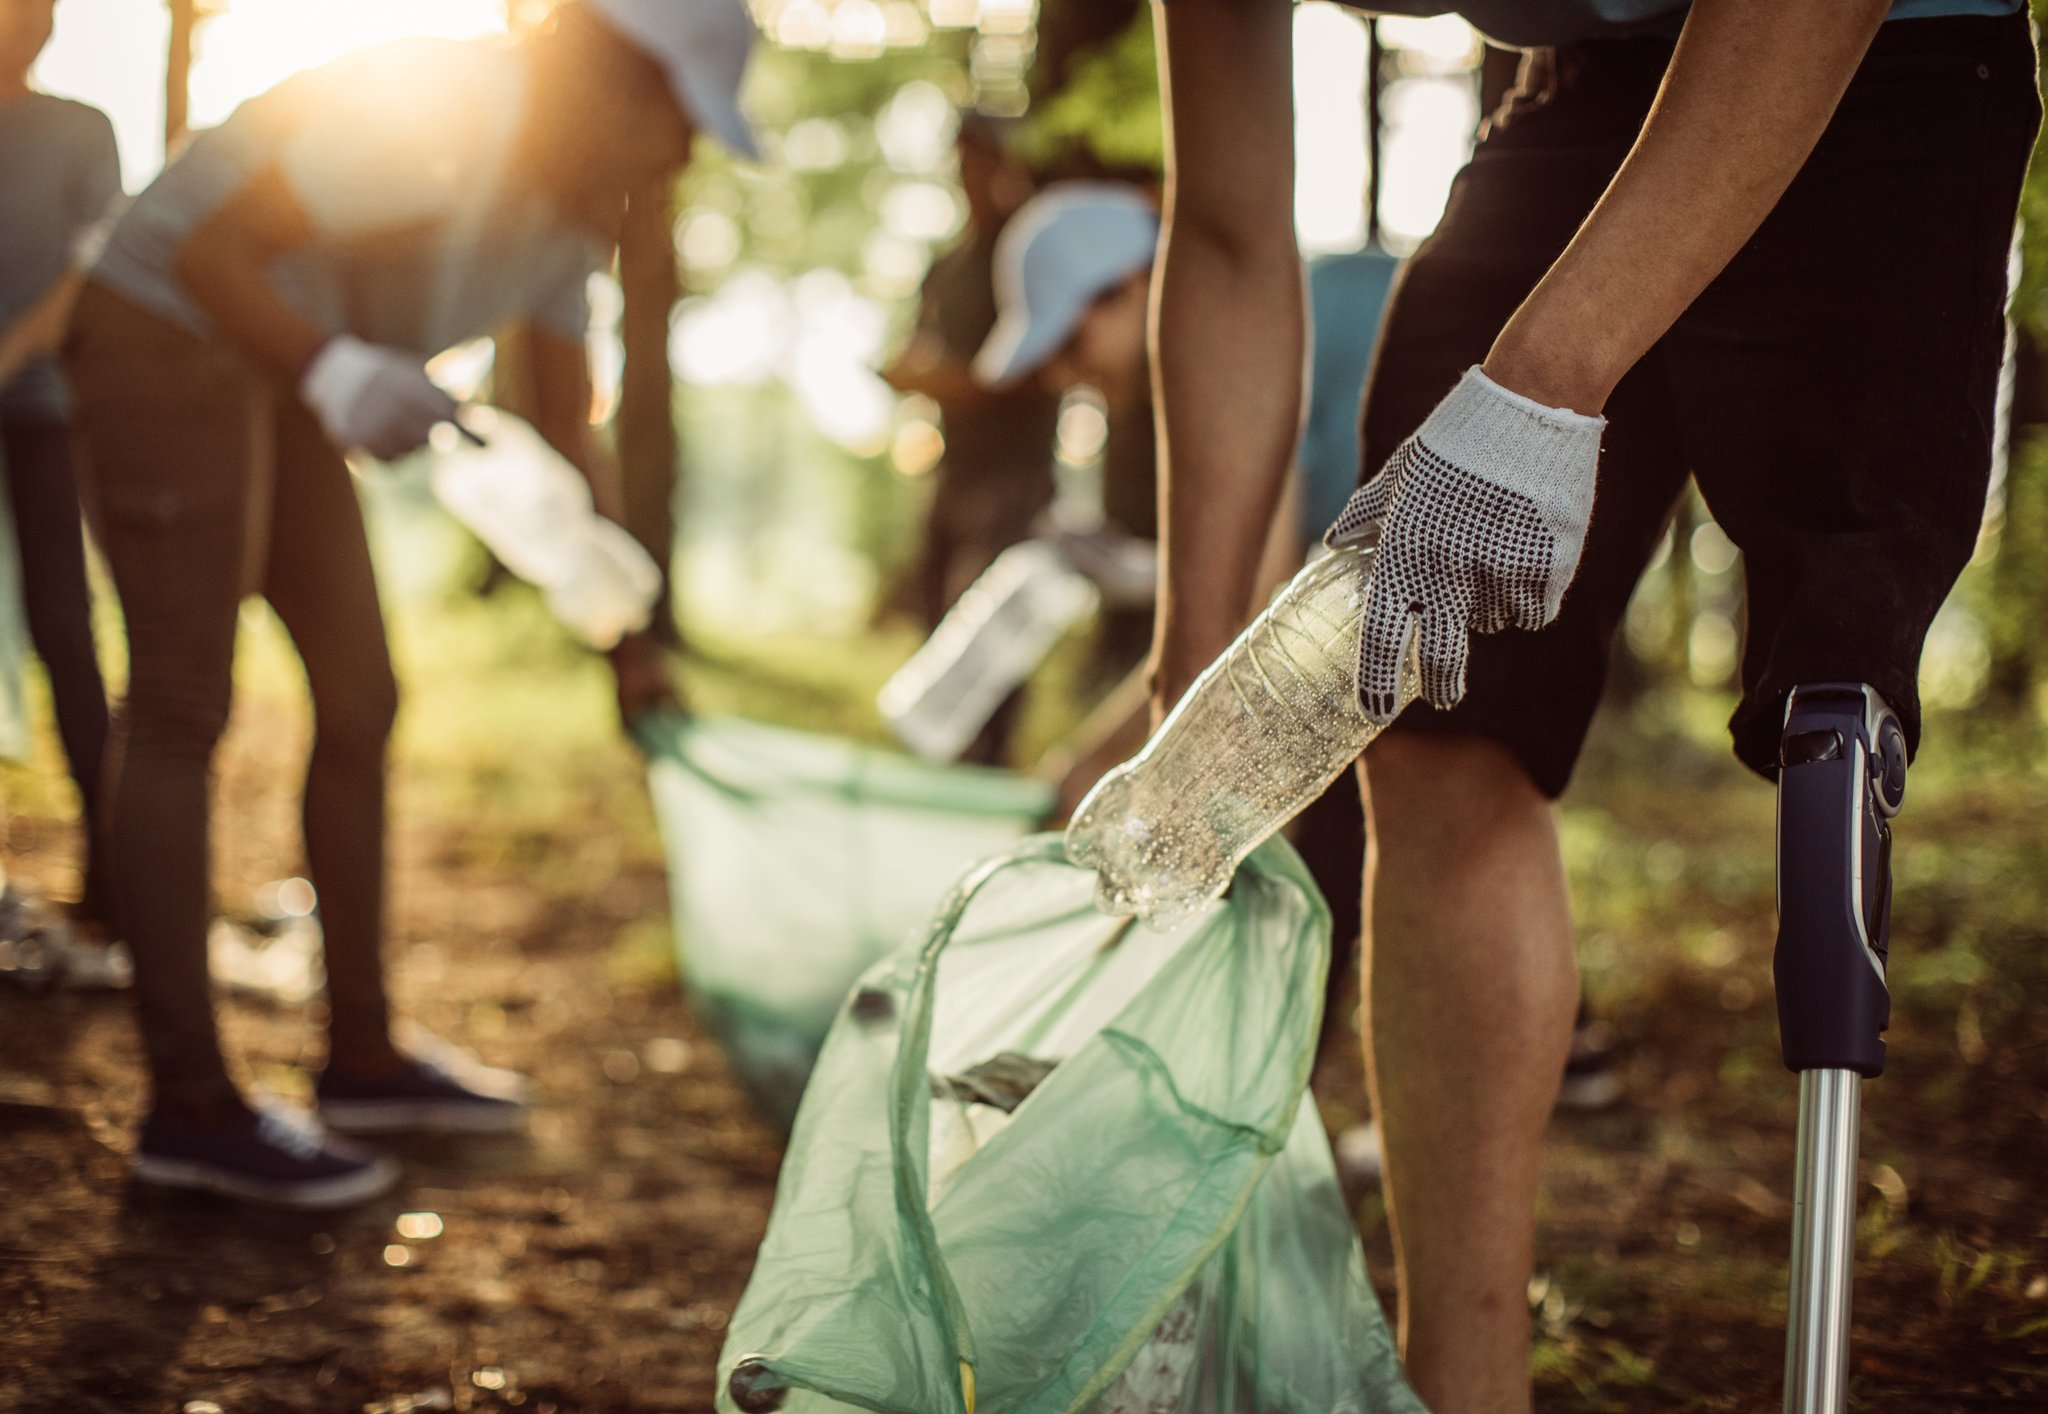 60 independent UK festivals have already committed to getting rid of single-use plastic at their events by 2021